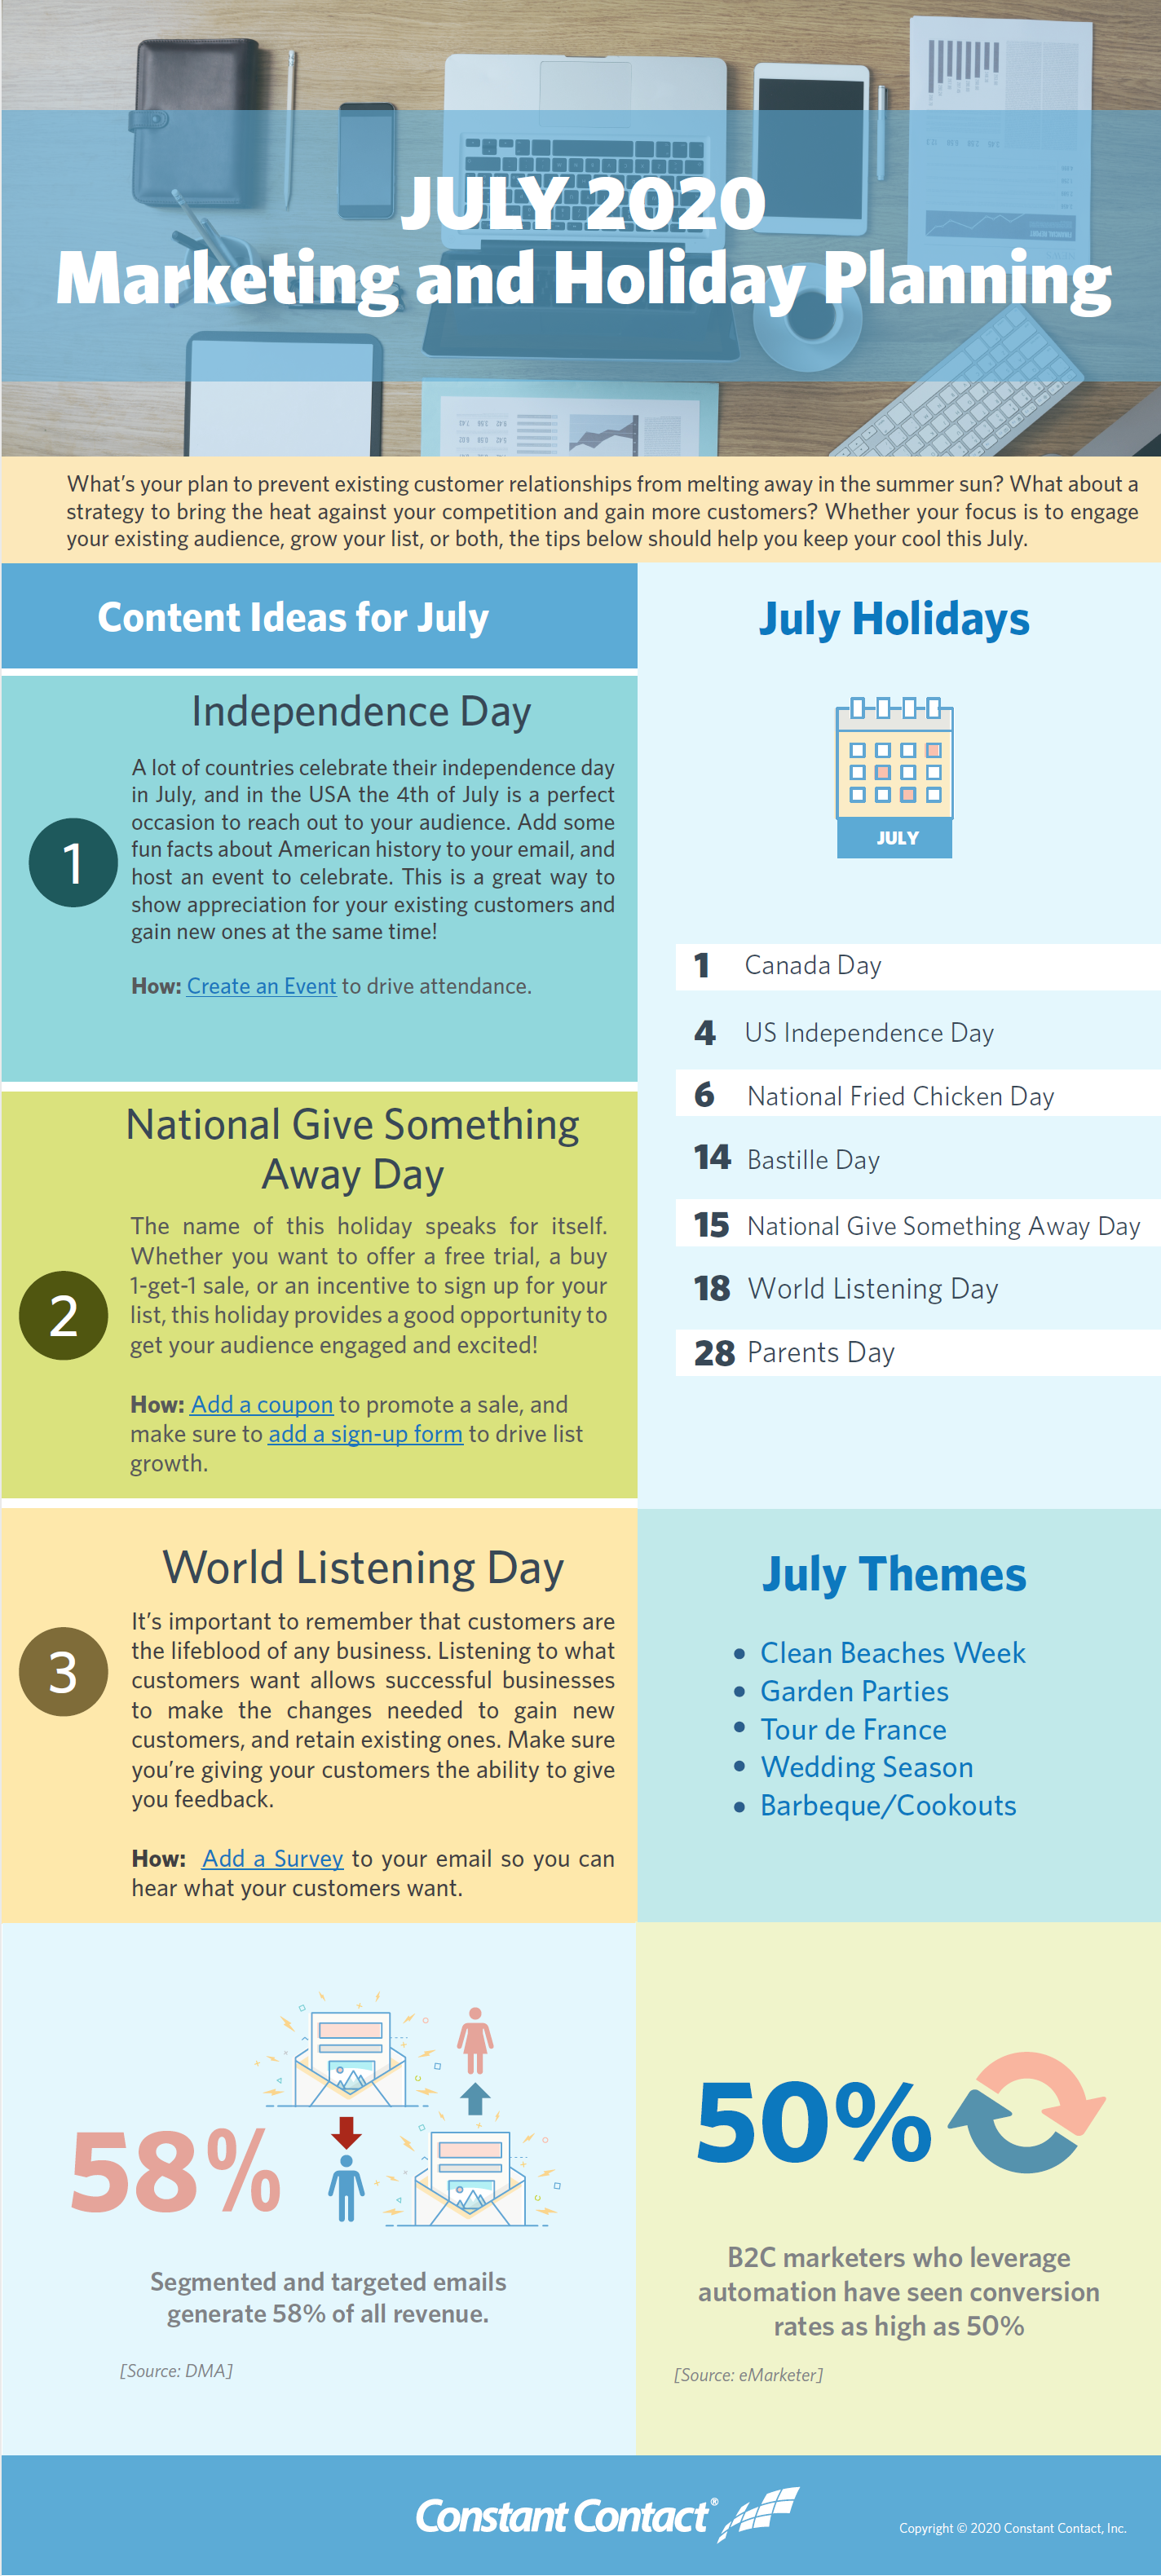 2020 July Marketing & Holiday Planning infographic